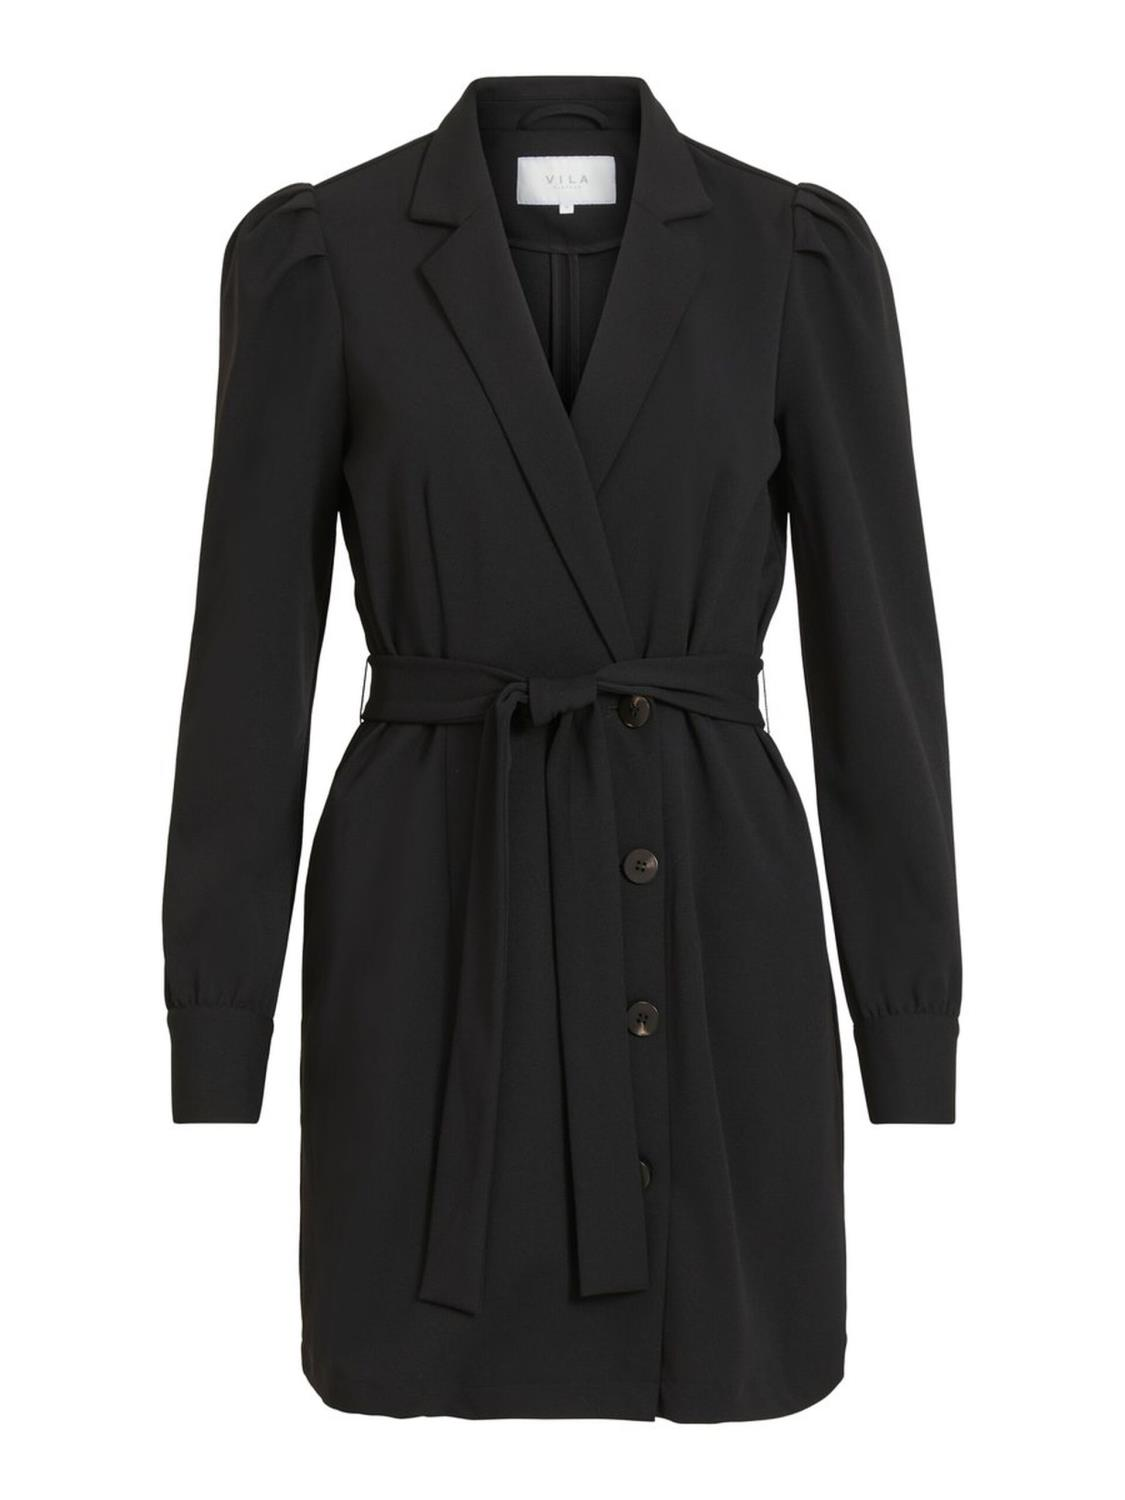 Vila Mary Blazer Dress, sort